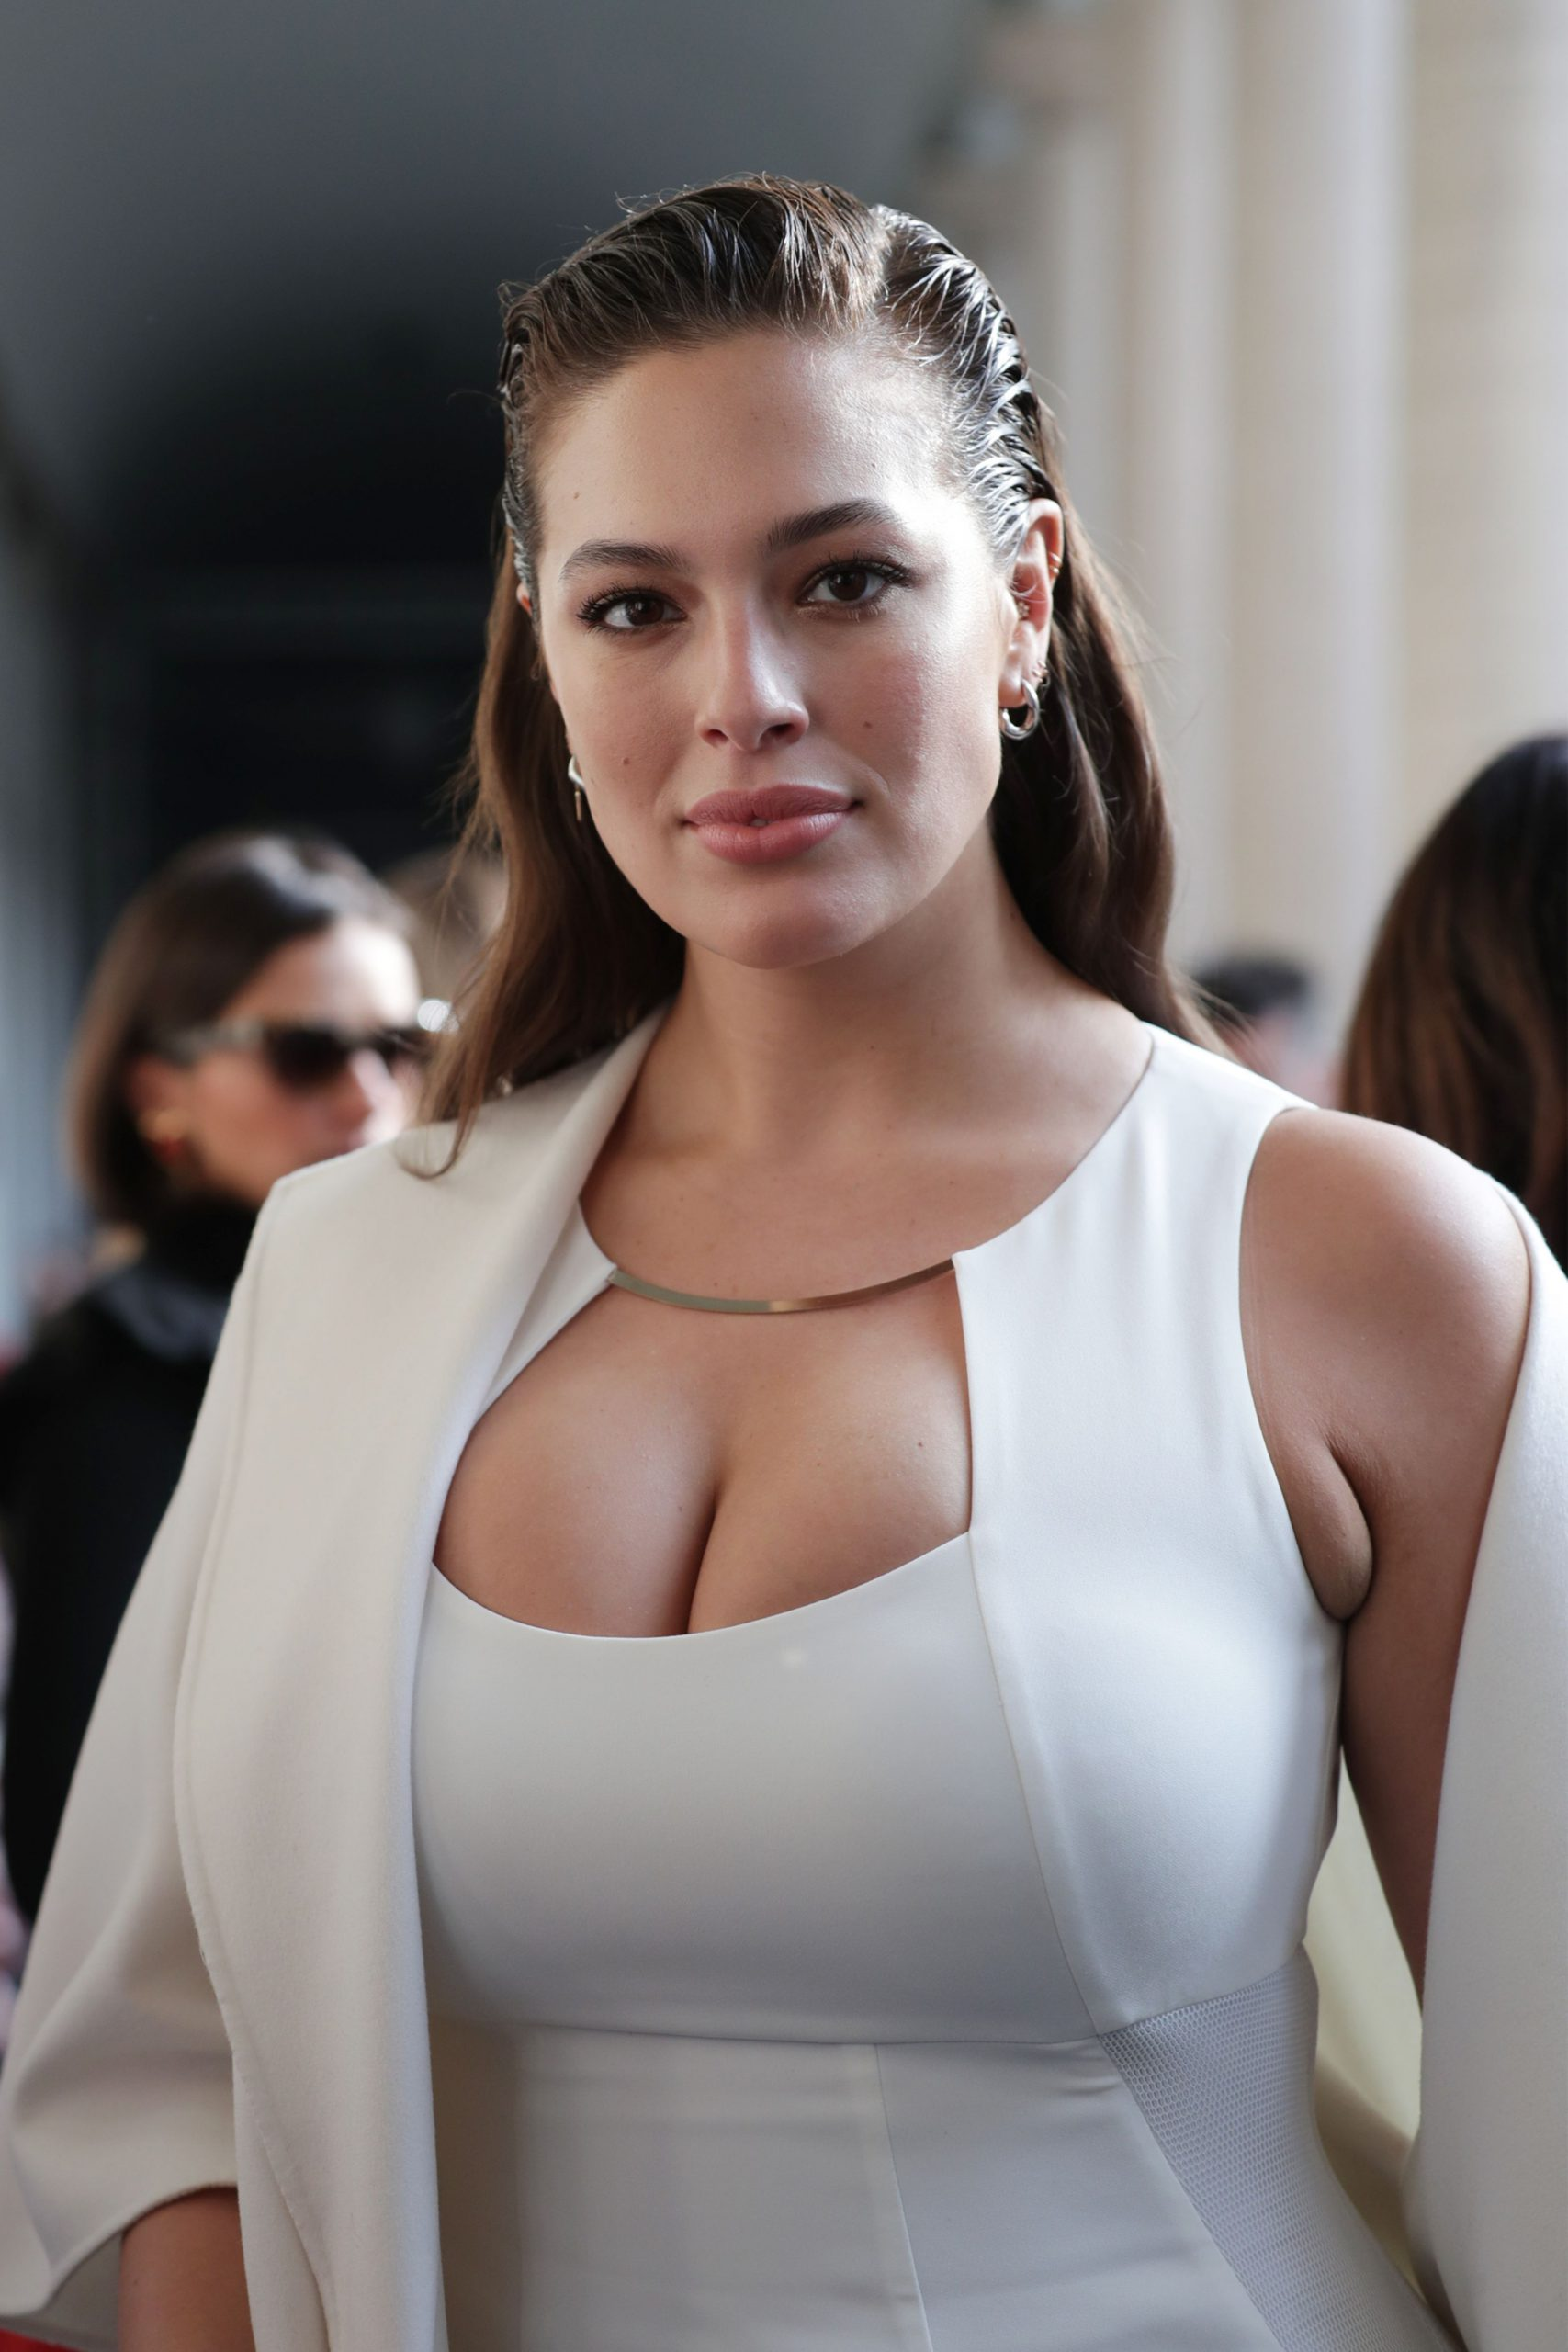 Ashley Graham Nude & Topless DIRTY Videos!